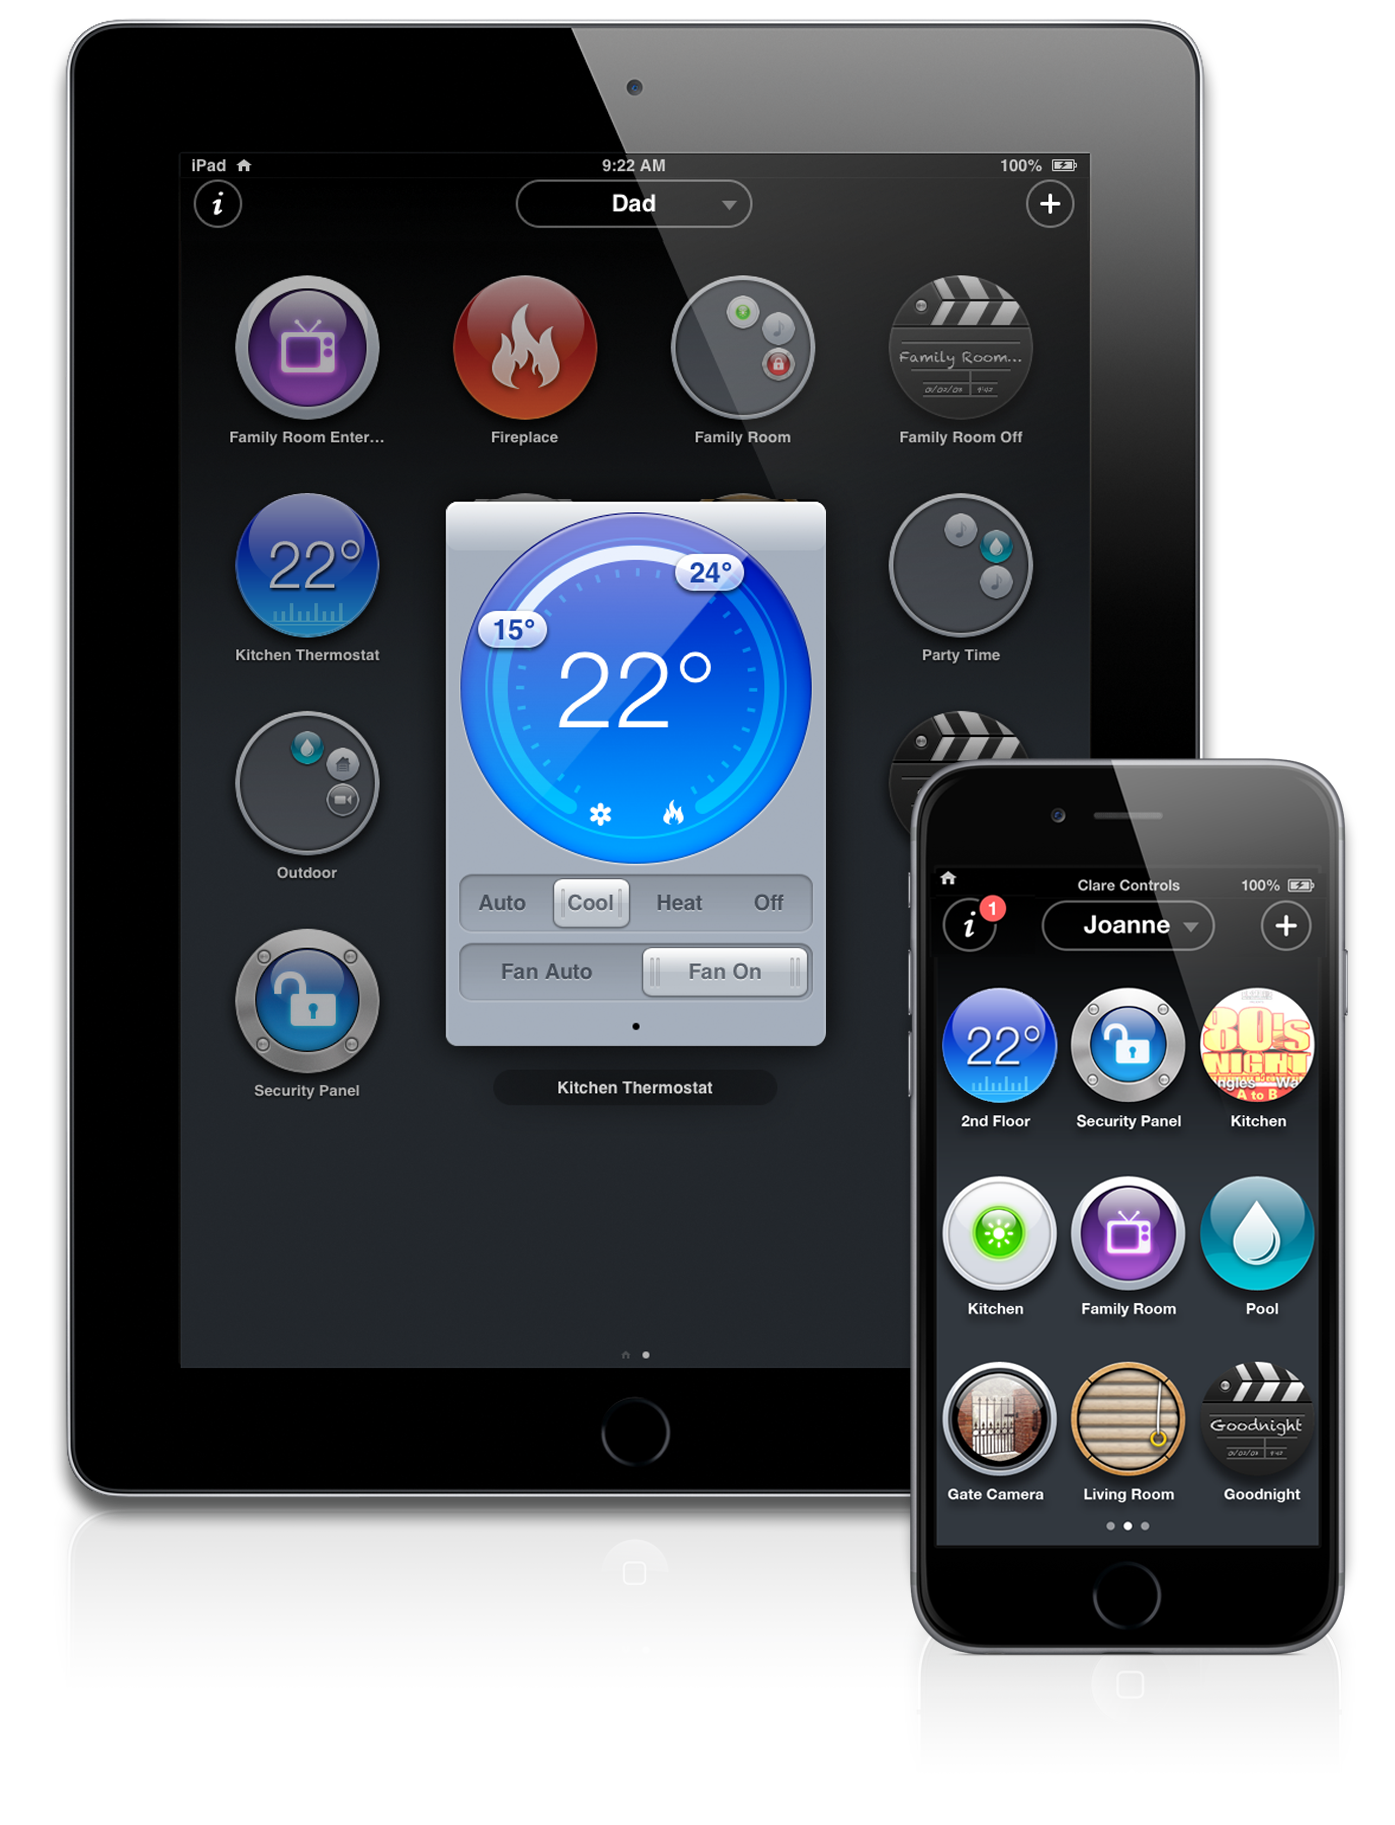 Clare-Controls-App-iPad-iPhone-Celsius.png